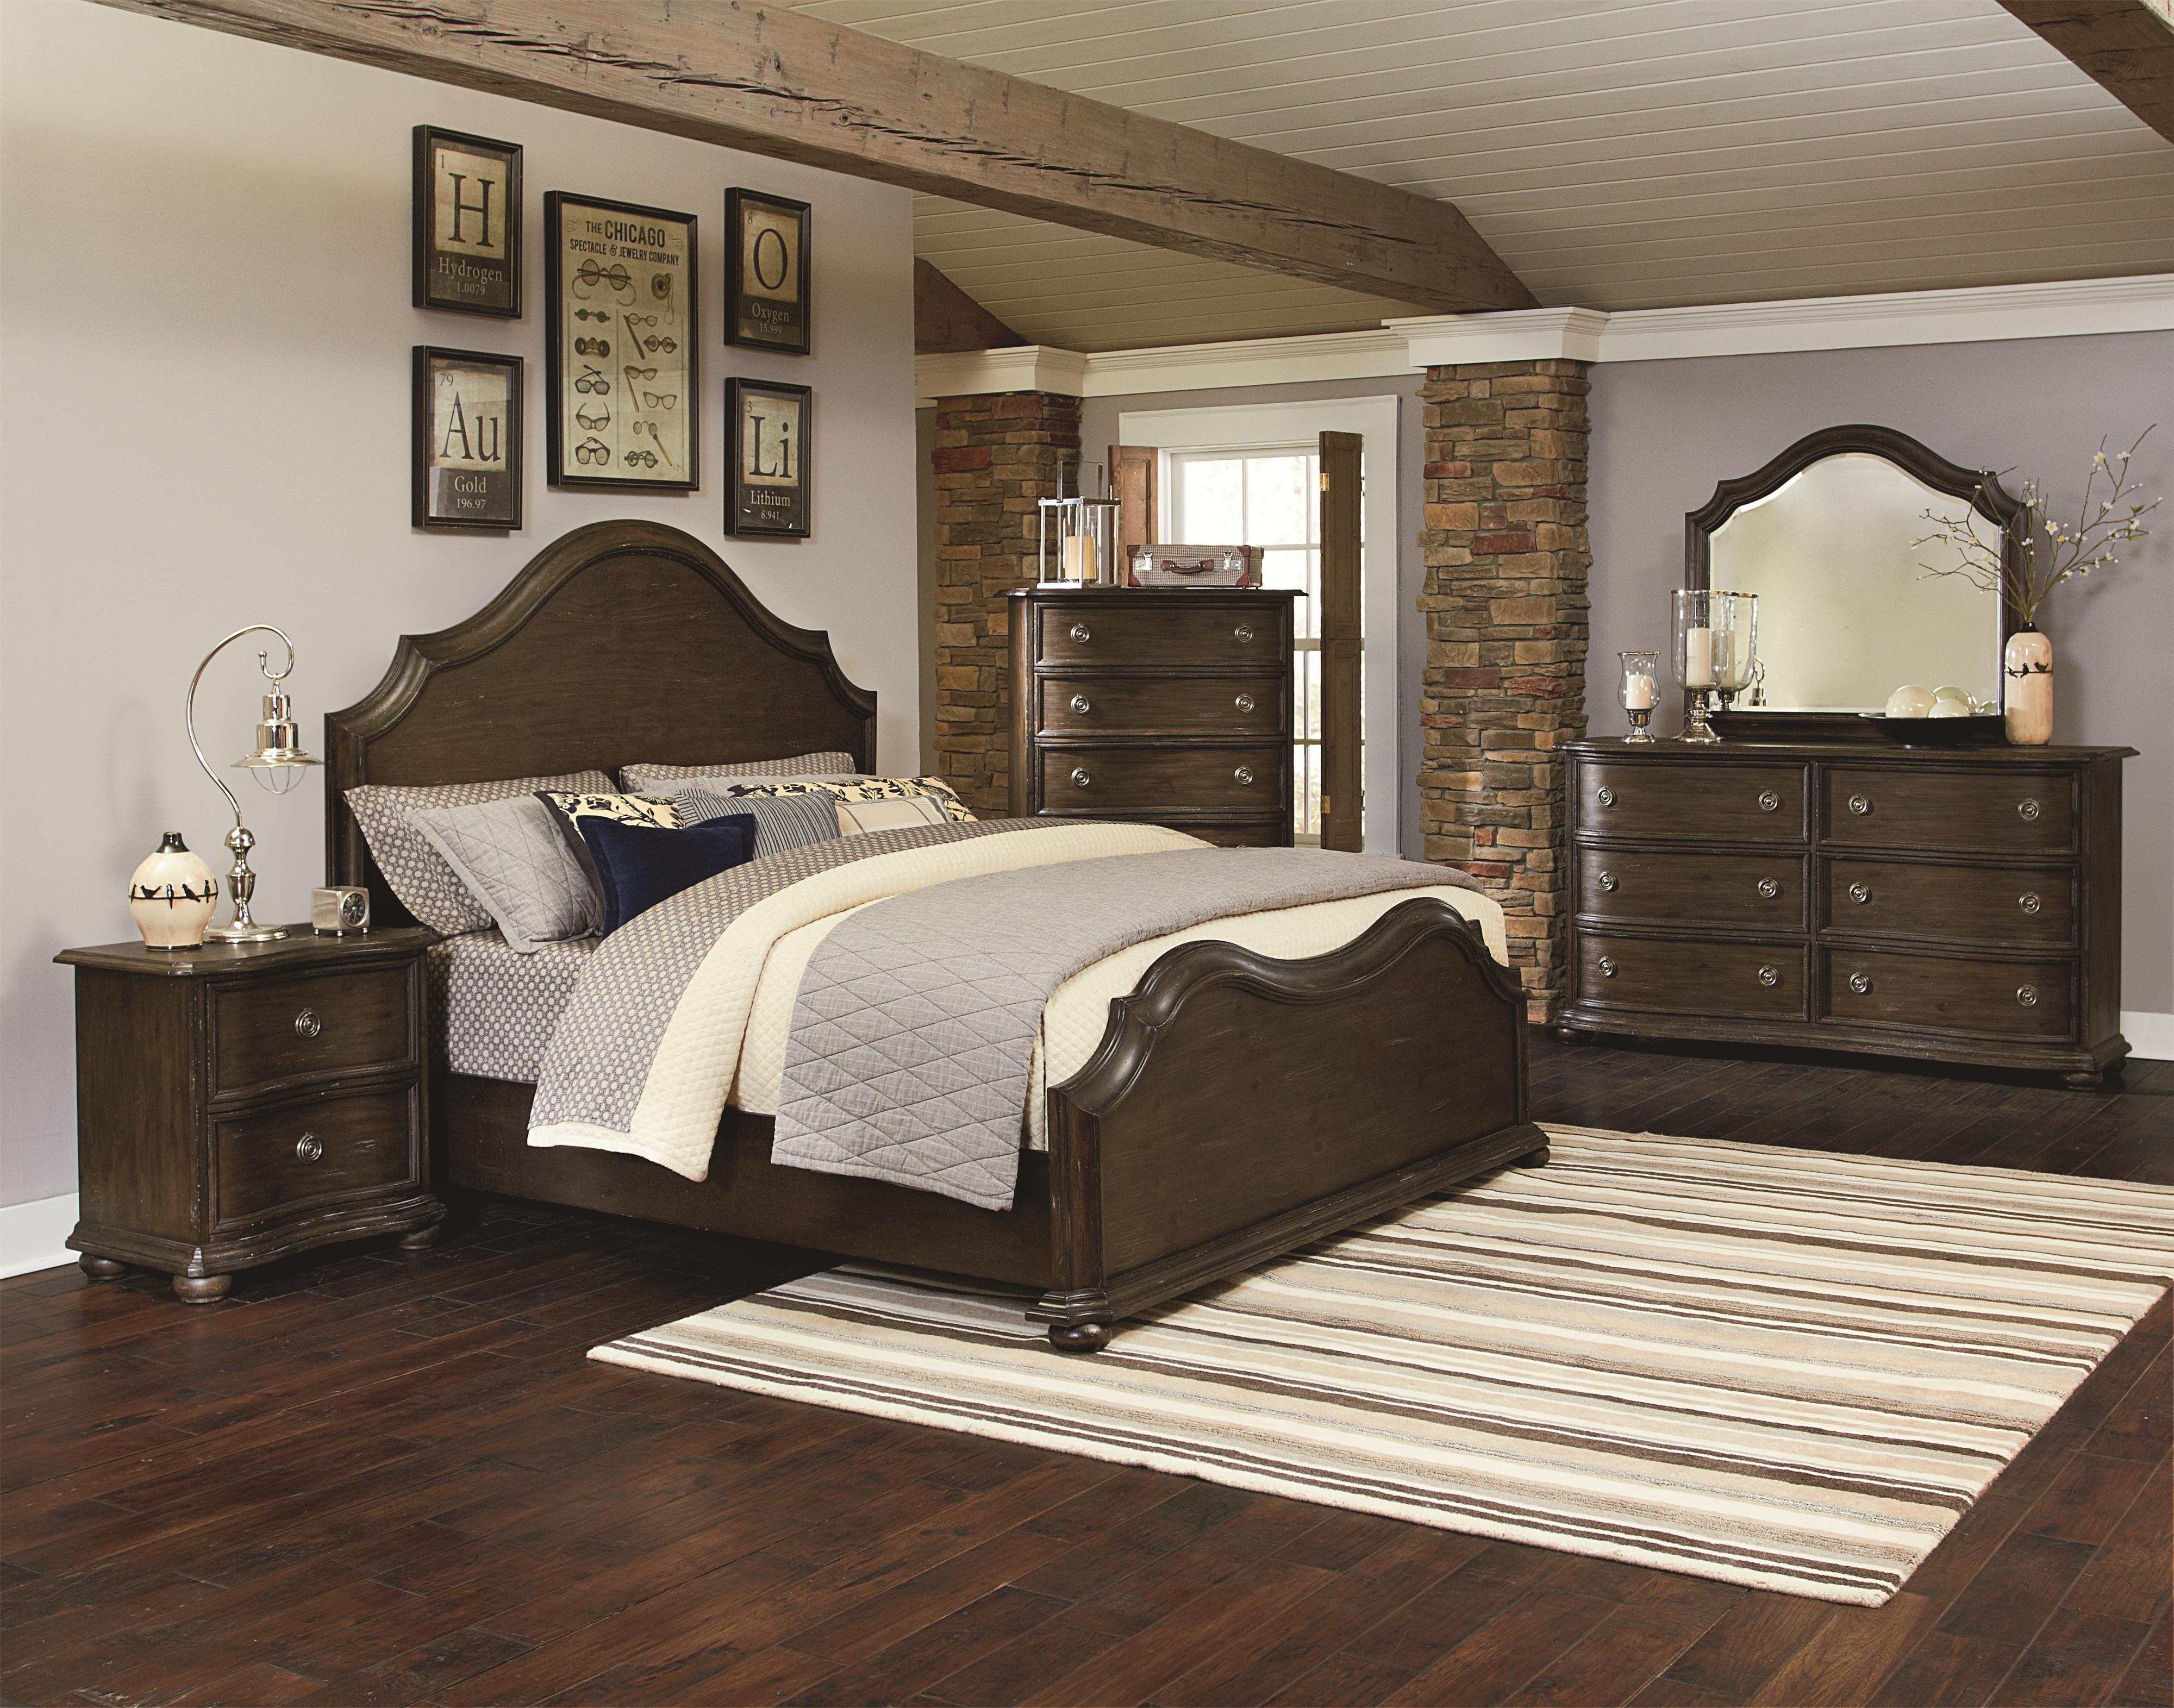 muirfield bedroom b2258 by magnussen home adcock furniture